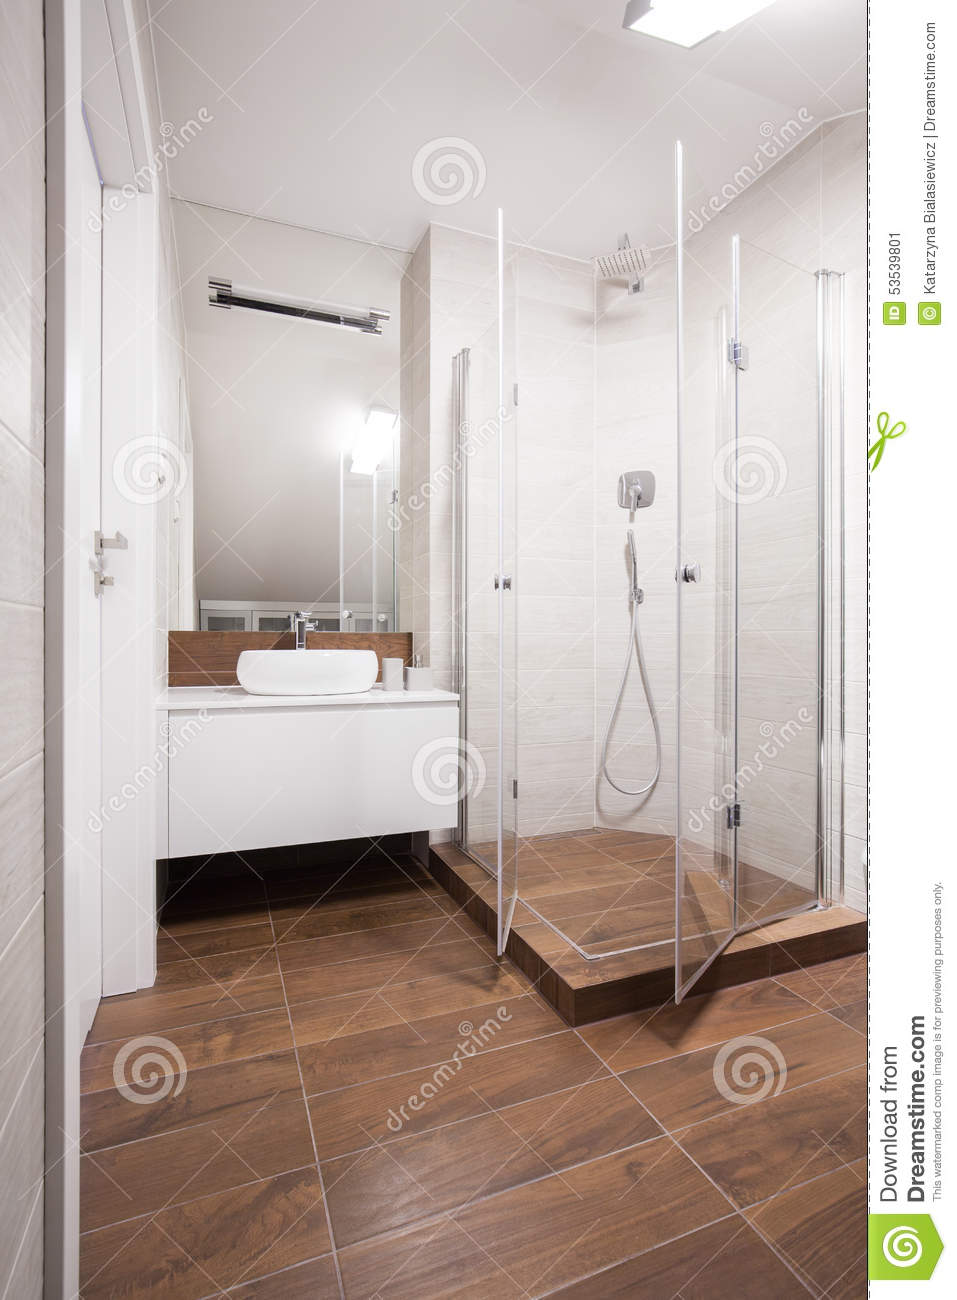 White And Brown Washroom Interior Stock Image Image Of Illuminated